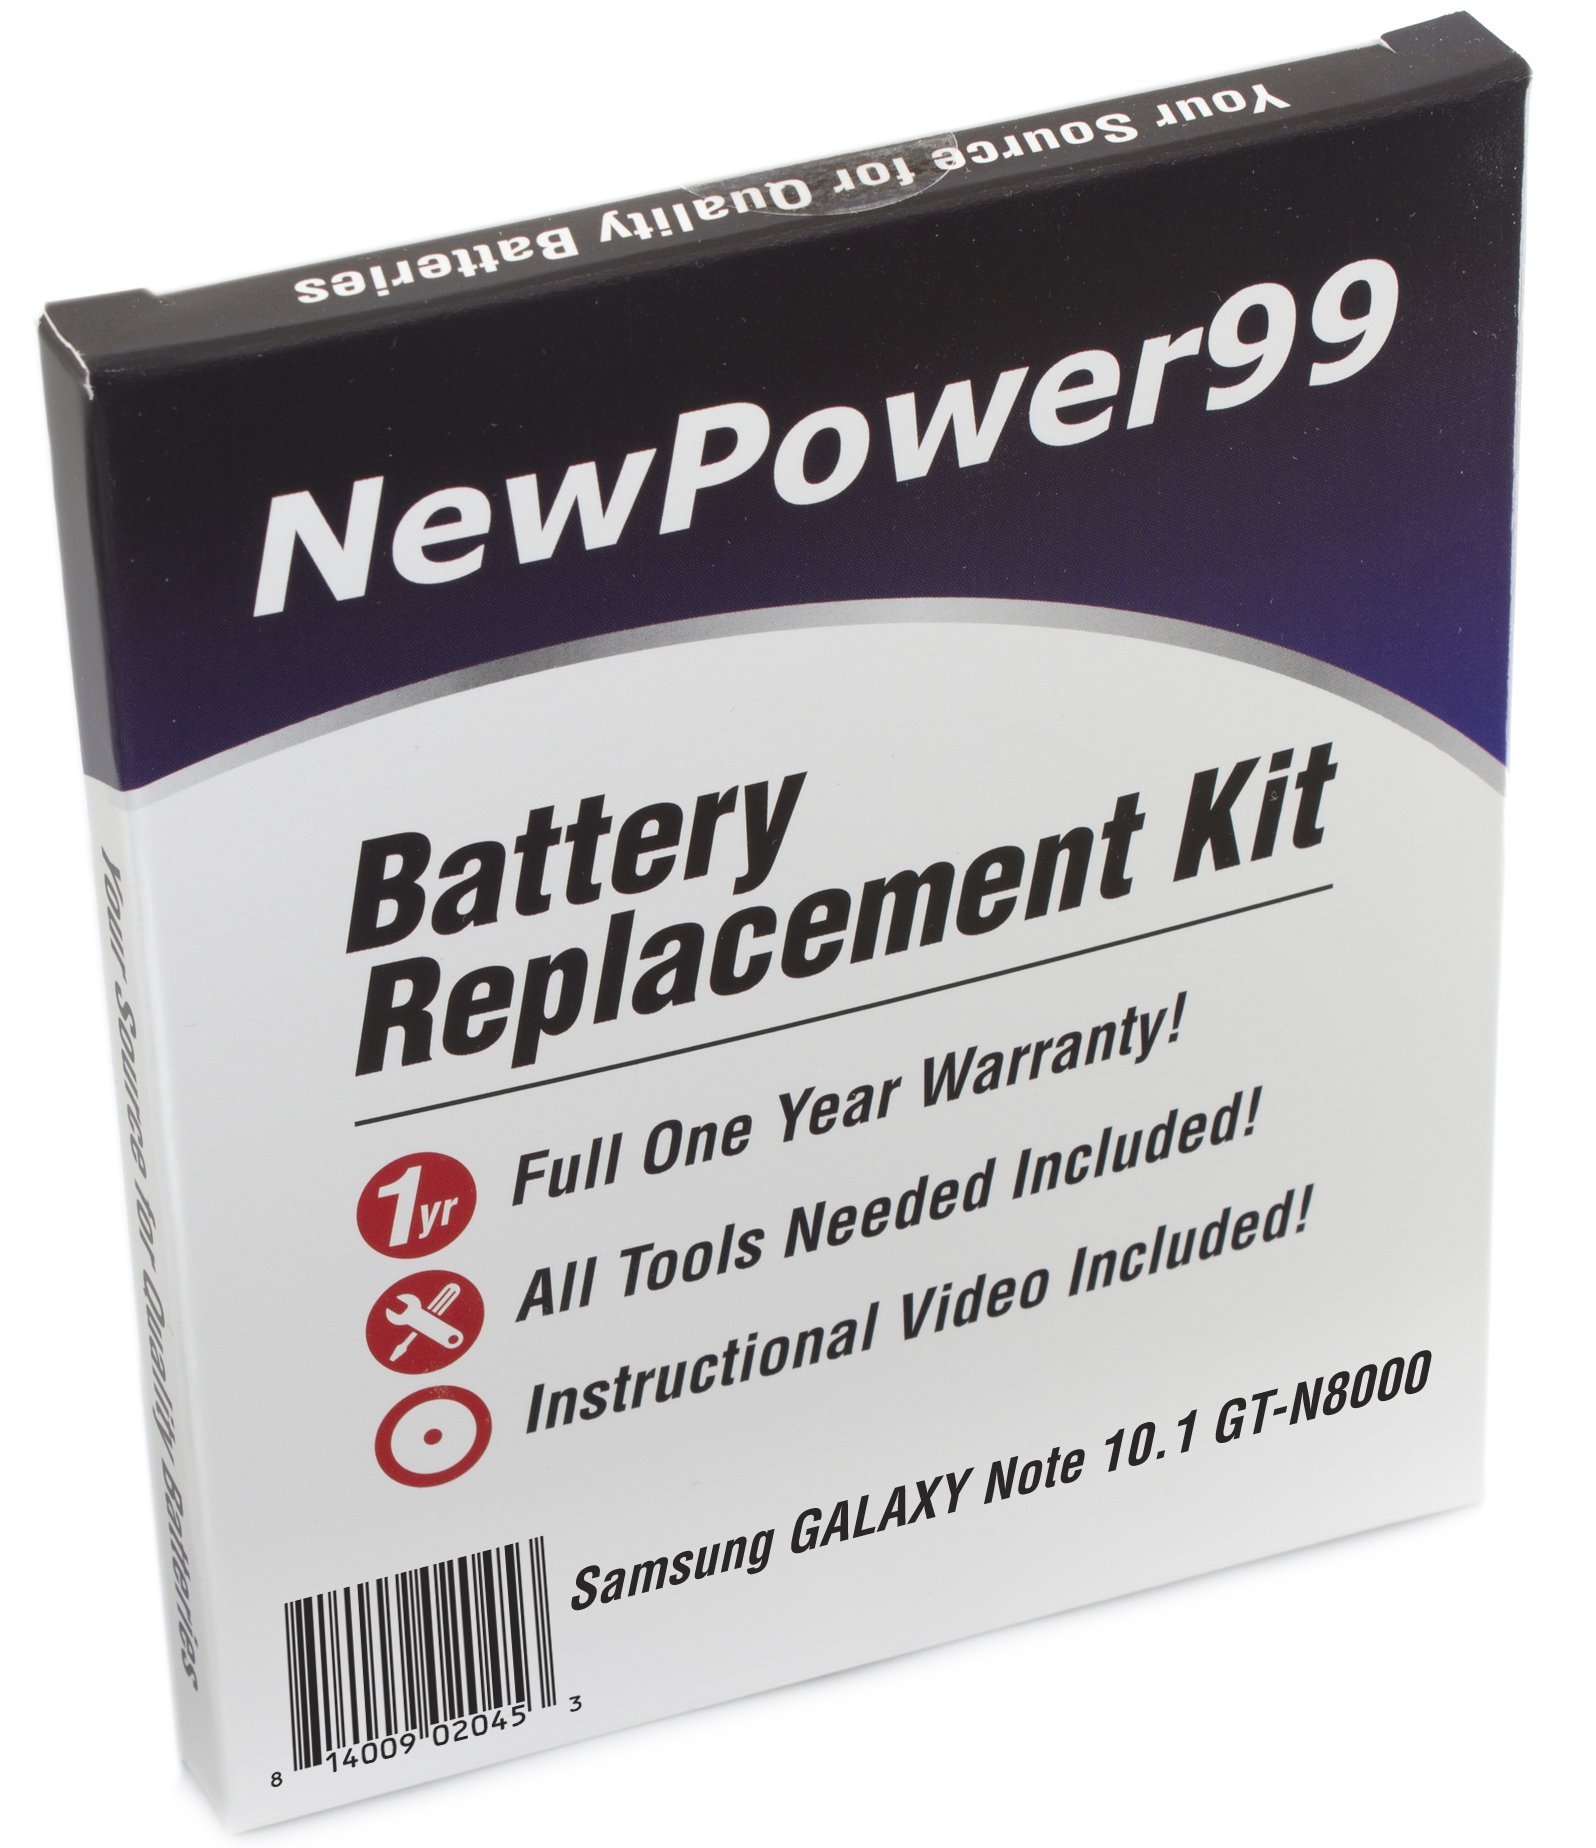 NewPower99 Samsung GALAXY Note 10.1 GT-N8000 Battery Replacement Kit with Video Installation DVD, Installation Tools, and Extended Life Battery